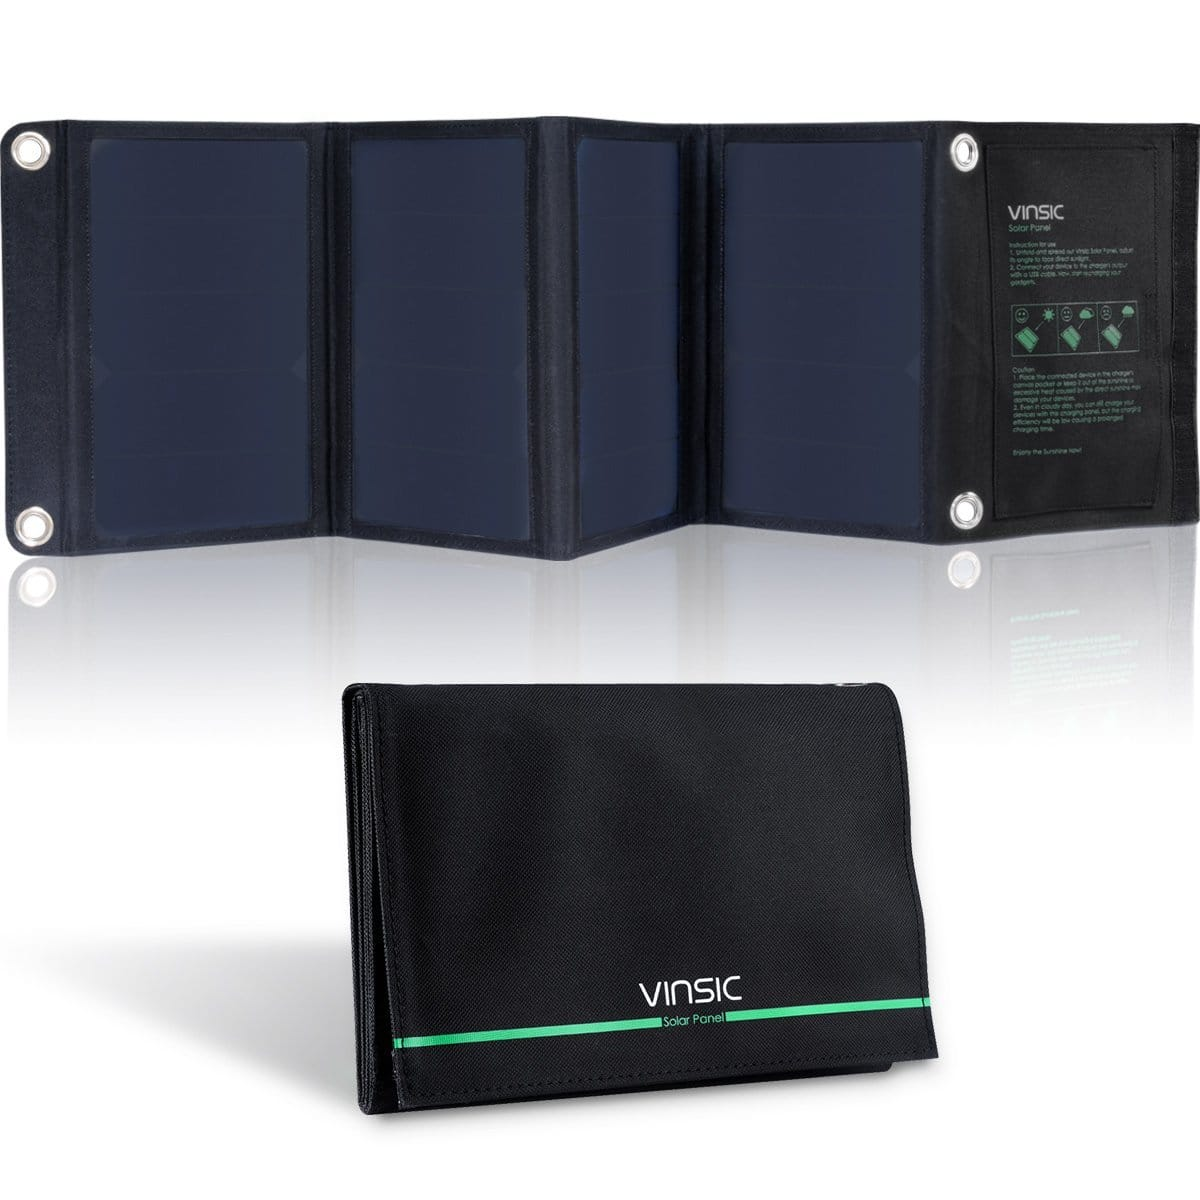 Vinsic 22W Portable Solar Panel & Dual-Port Charger  $60 + Free Shipping